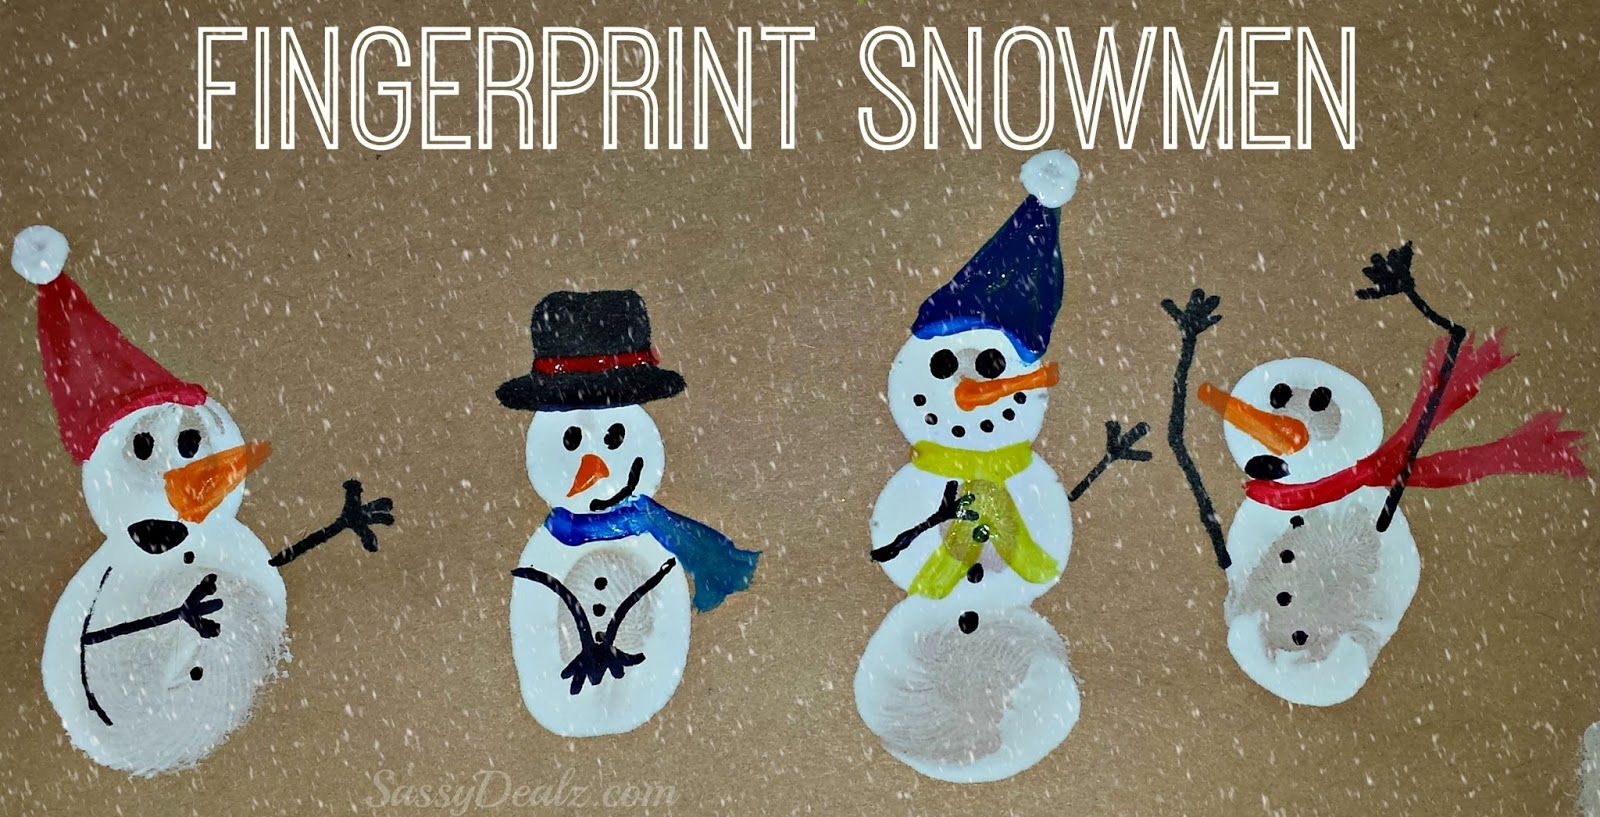 ... finger in white paint and push it on the paper to make snowmen bodies